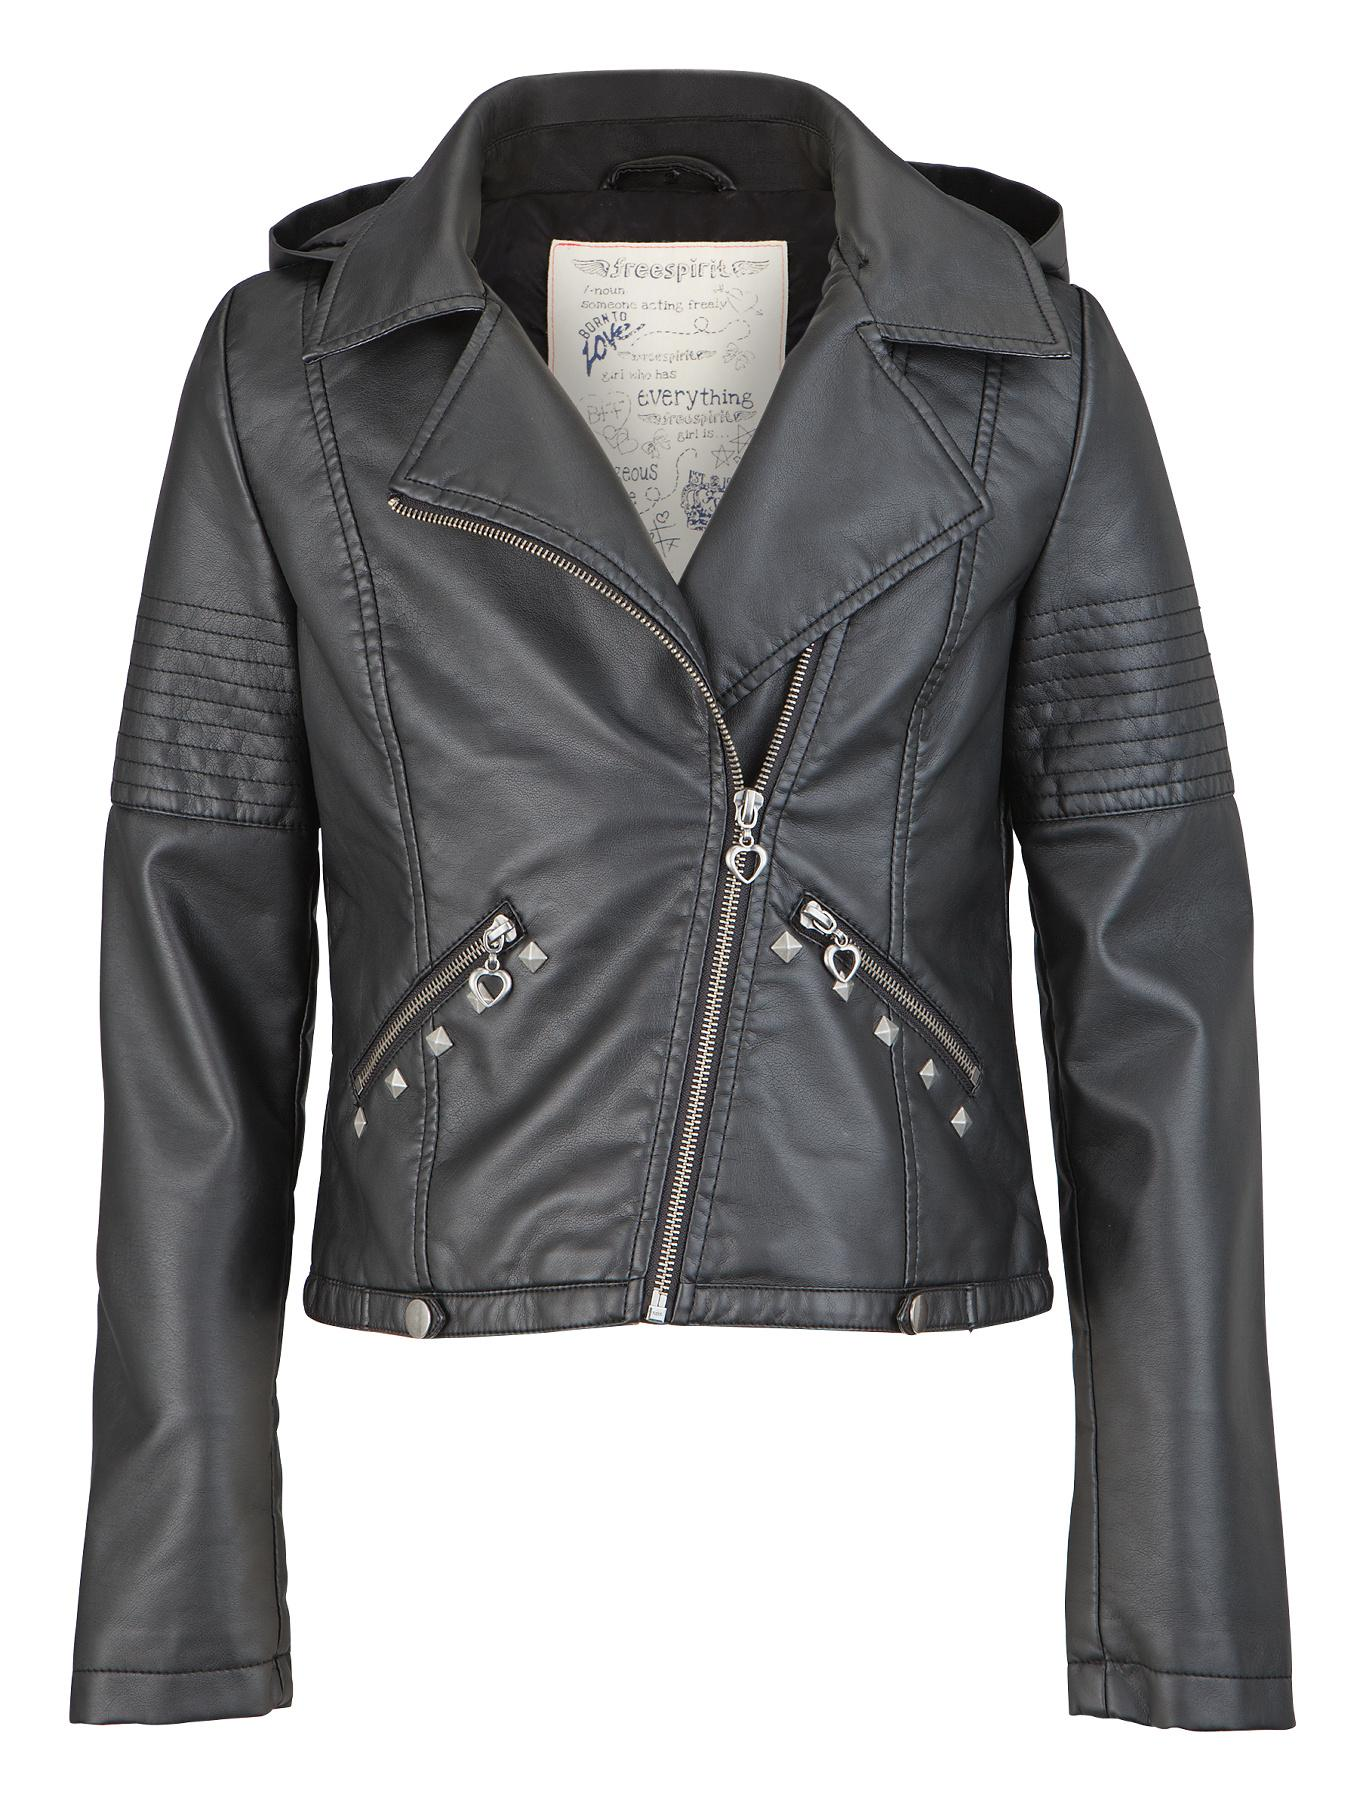 Freespirit Girls PU Biker Jacket with Detachable Hood and Studs - Black, Black